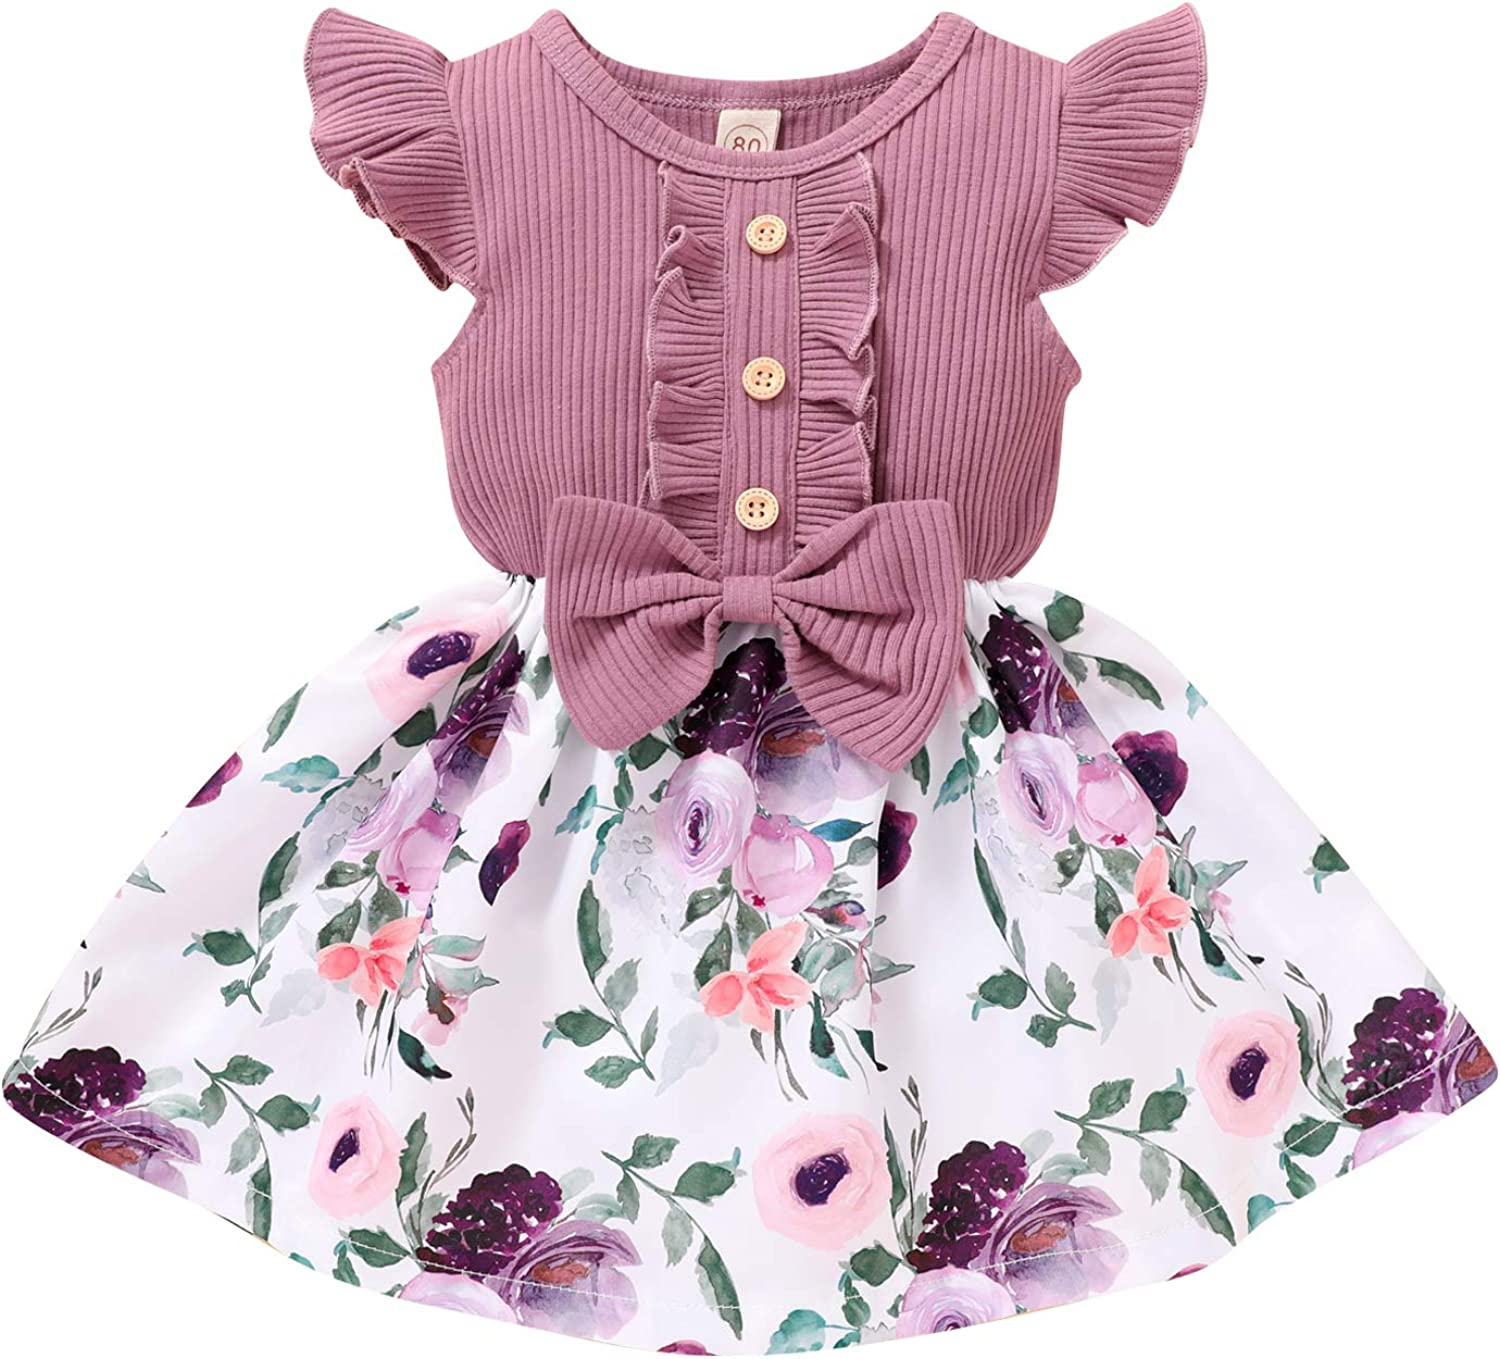 Toddler Manufacturer direct delivery Baby Girl Clothes Summer Top Bow Sleeveless Dress Ruffle Sale special price